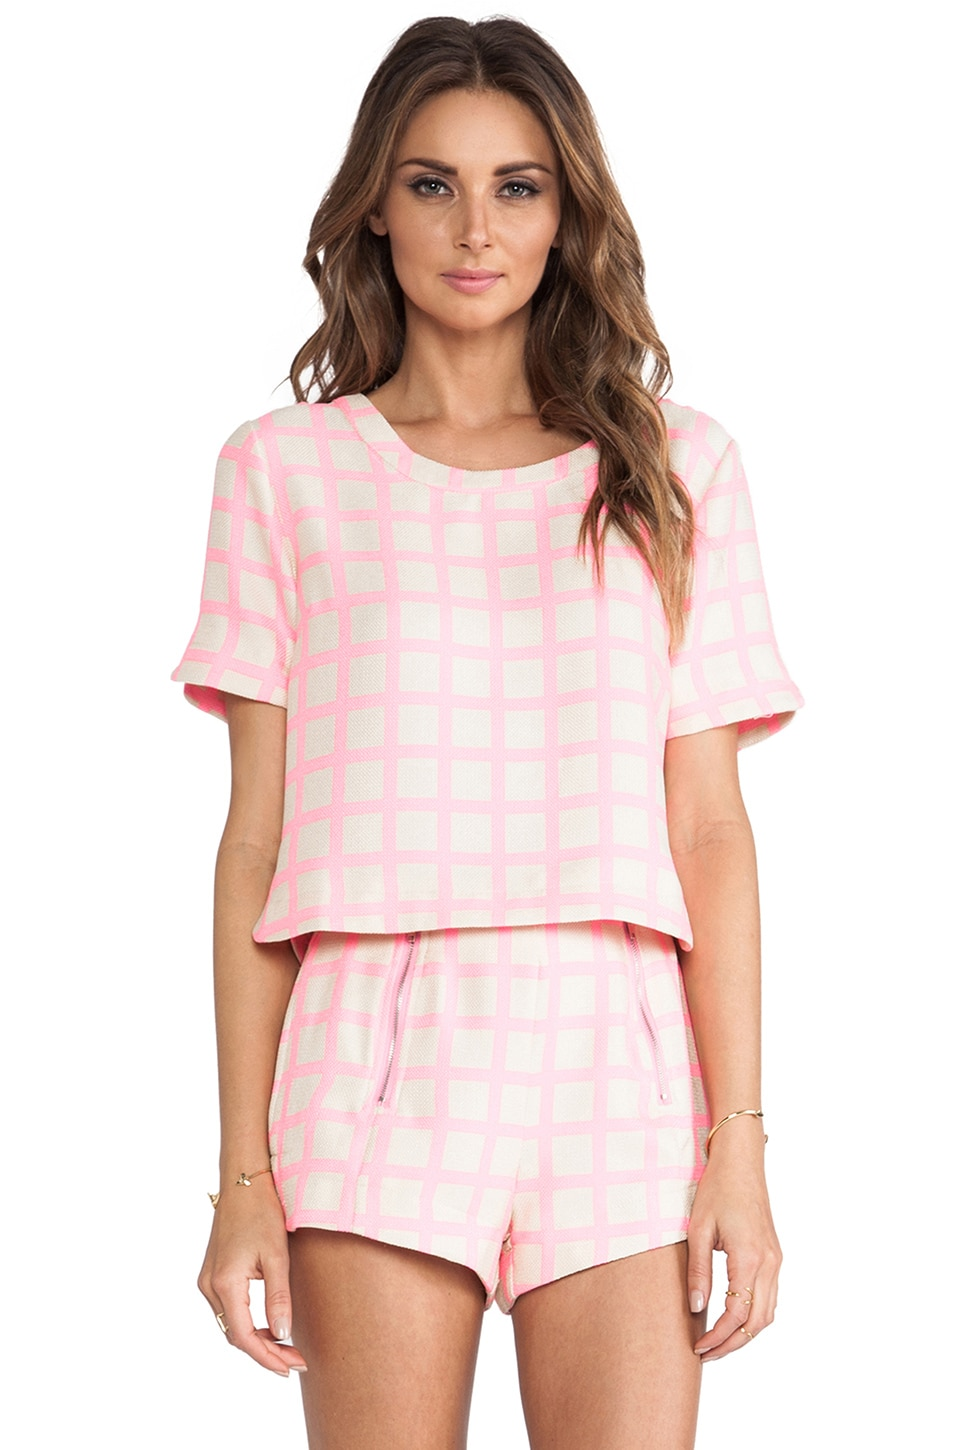 J.O.A. Pink Checked Top in Neon Pink